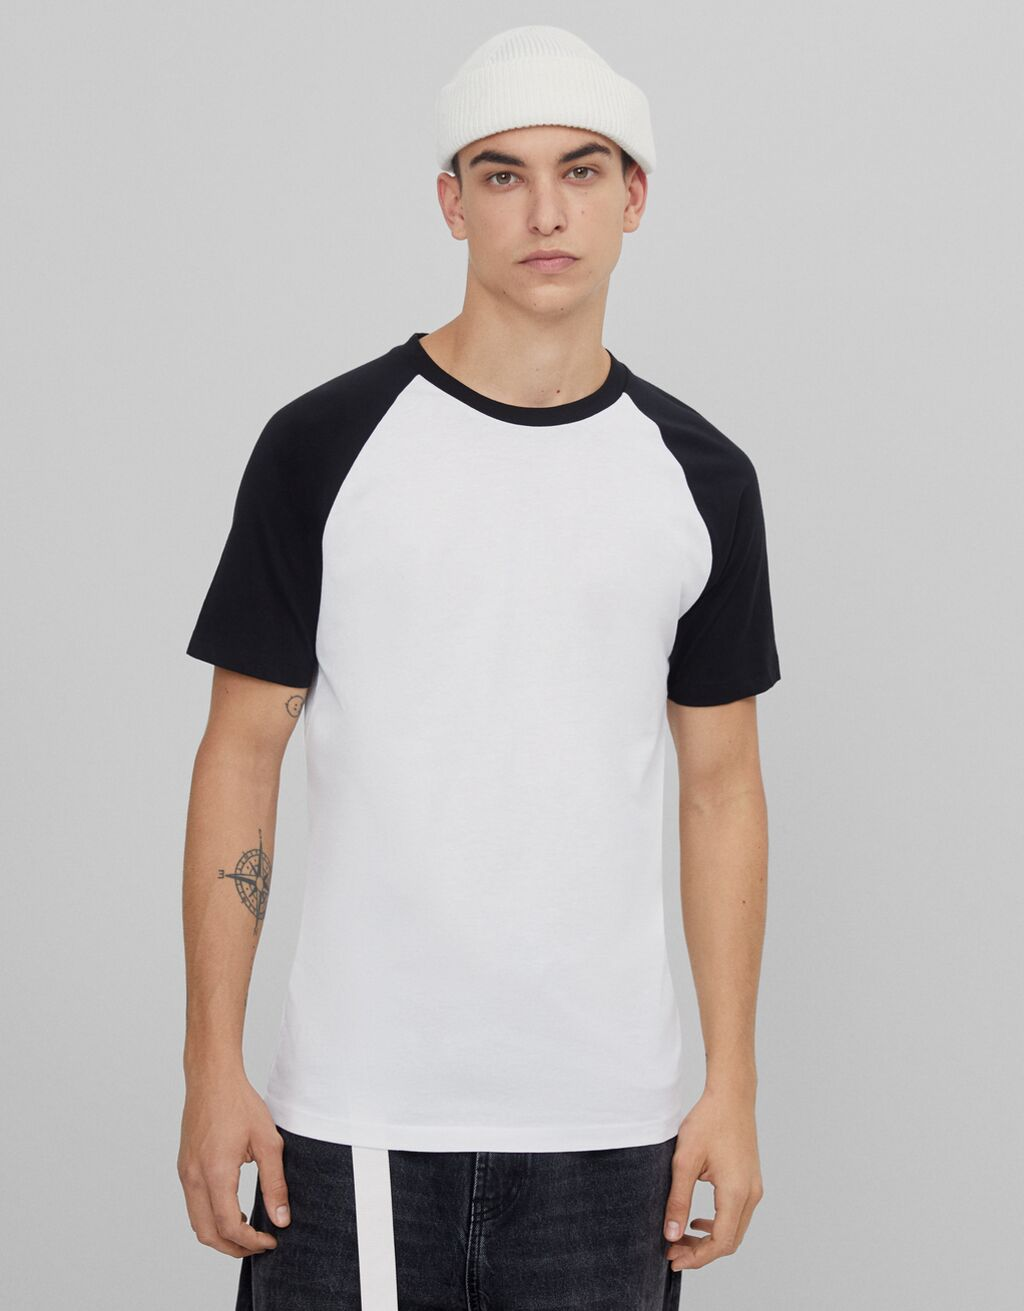 T-shirt with raglan sleeves